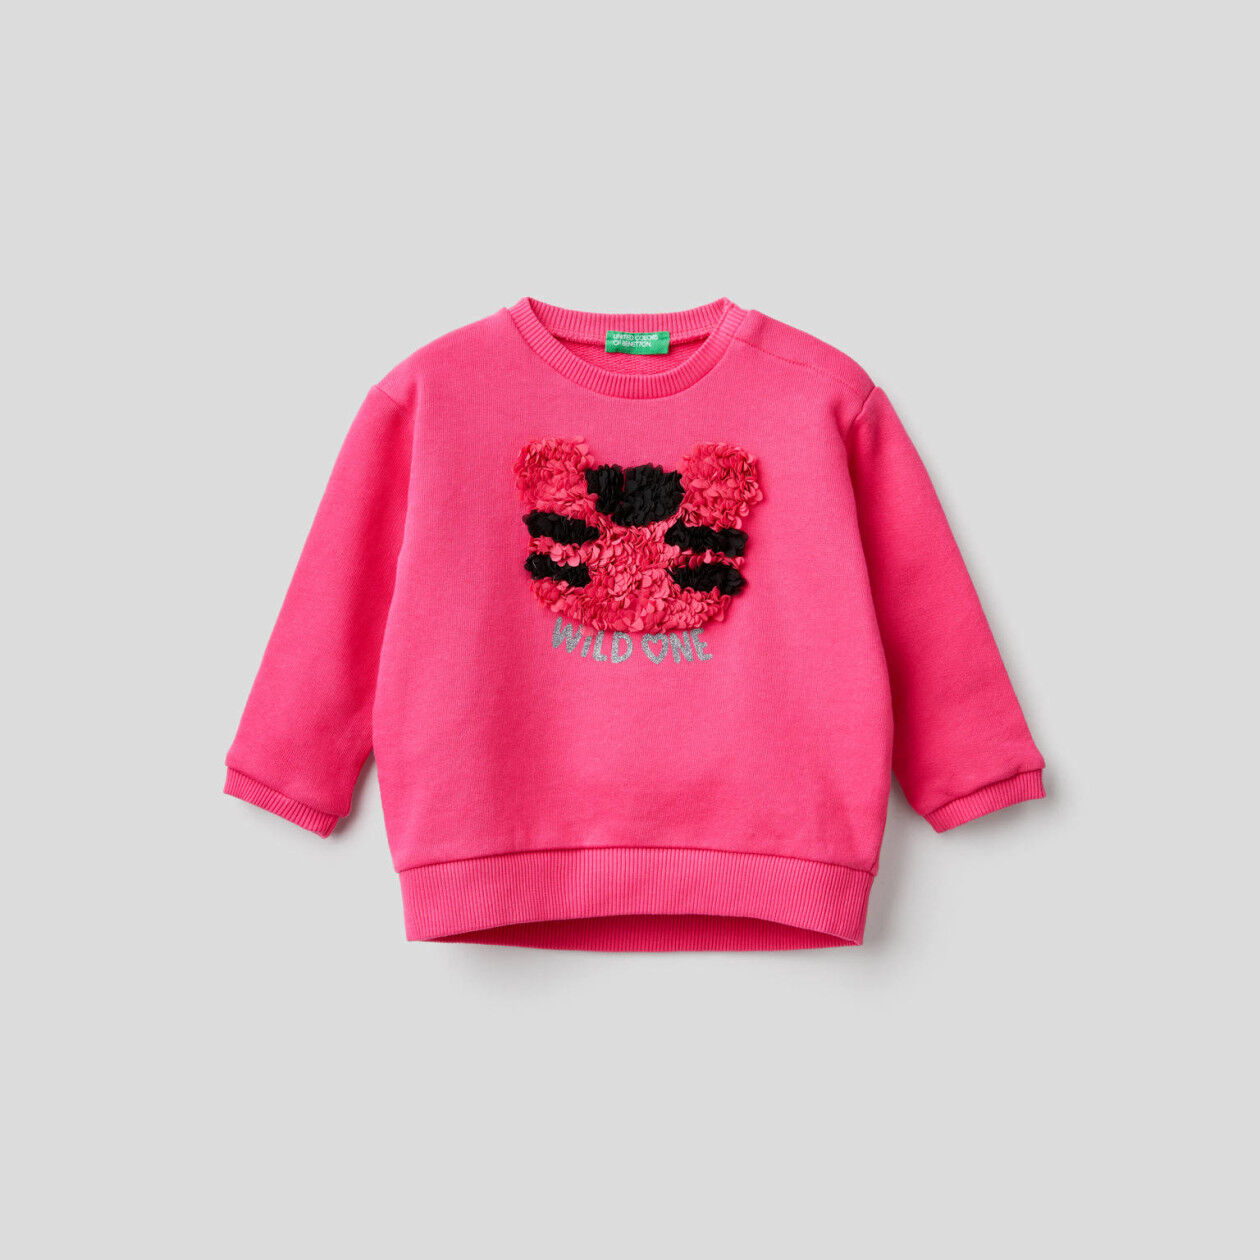 Sweatshirt with petal look applique